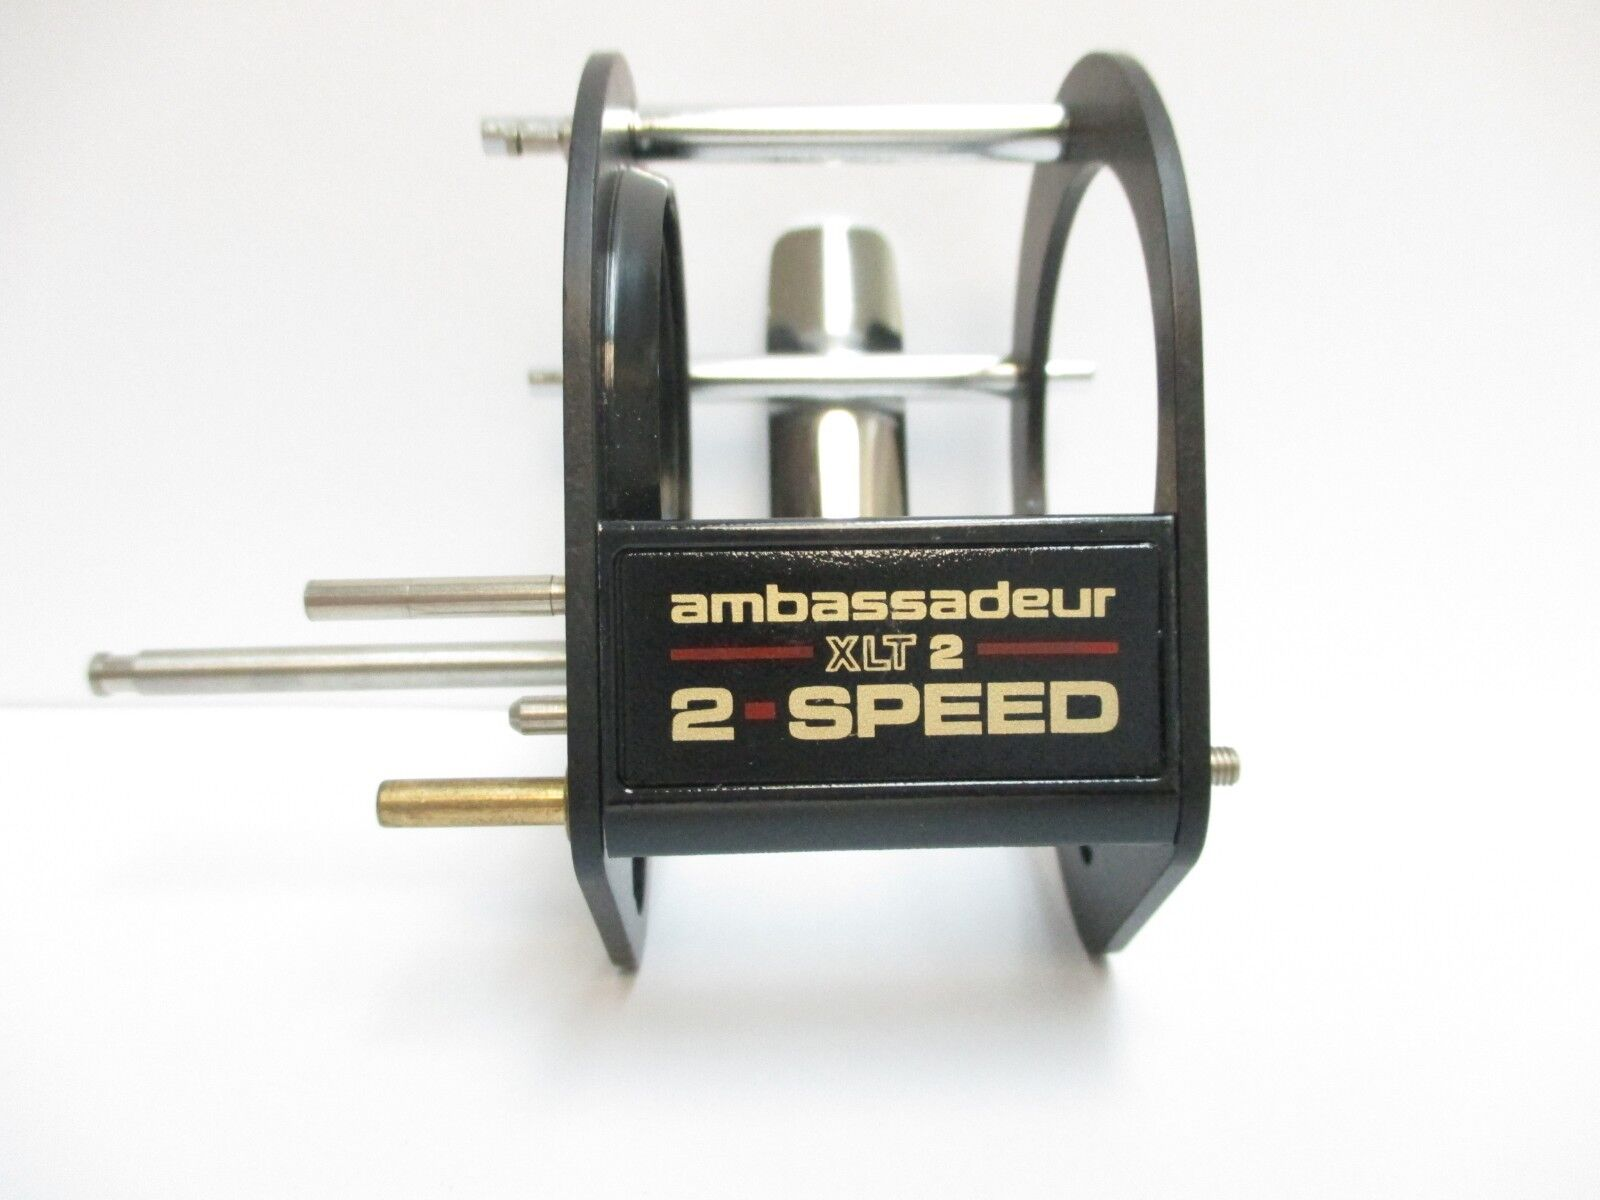 ABU GARCIA REEL PART - 802298 Ambassadeur XLT2 2-Speed (89-0) - Frame